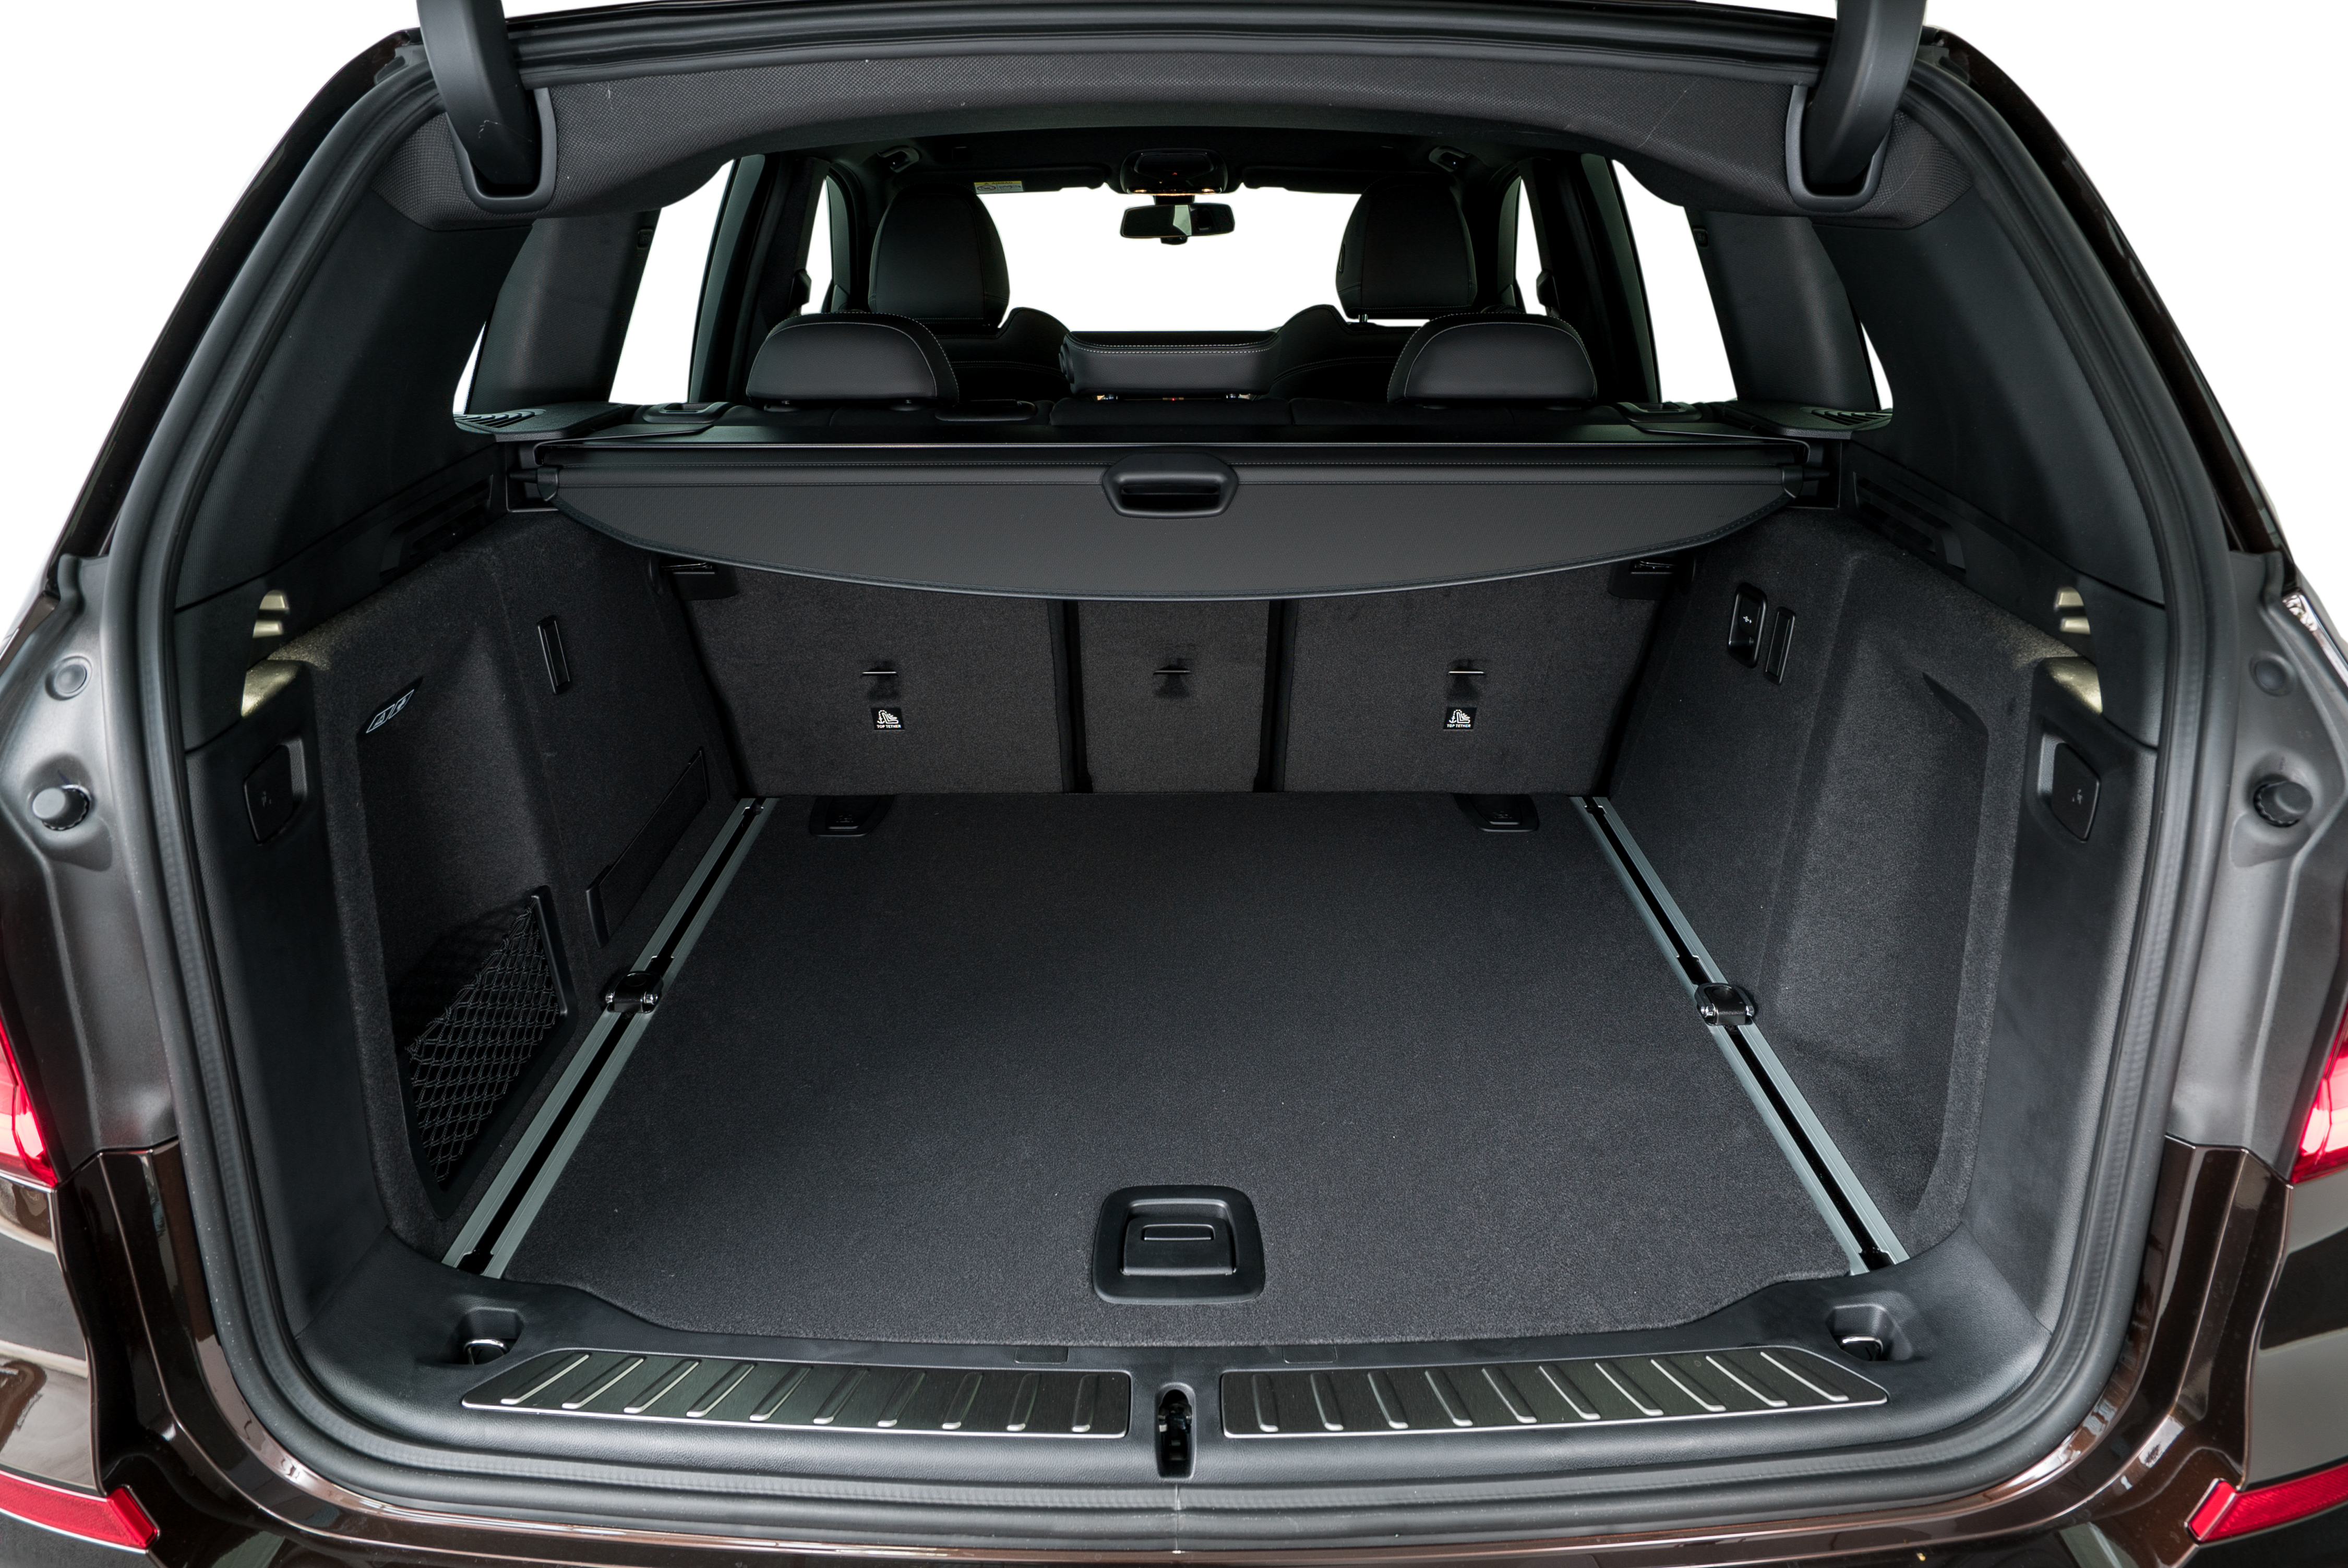 Boot E Is Huge As Well With A Capacity Of 550 Litres That Can Be Expanded To 1 600 When The Rear Seats Are Folded Down